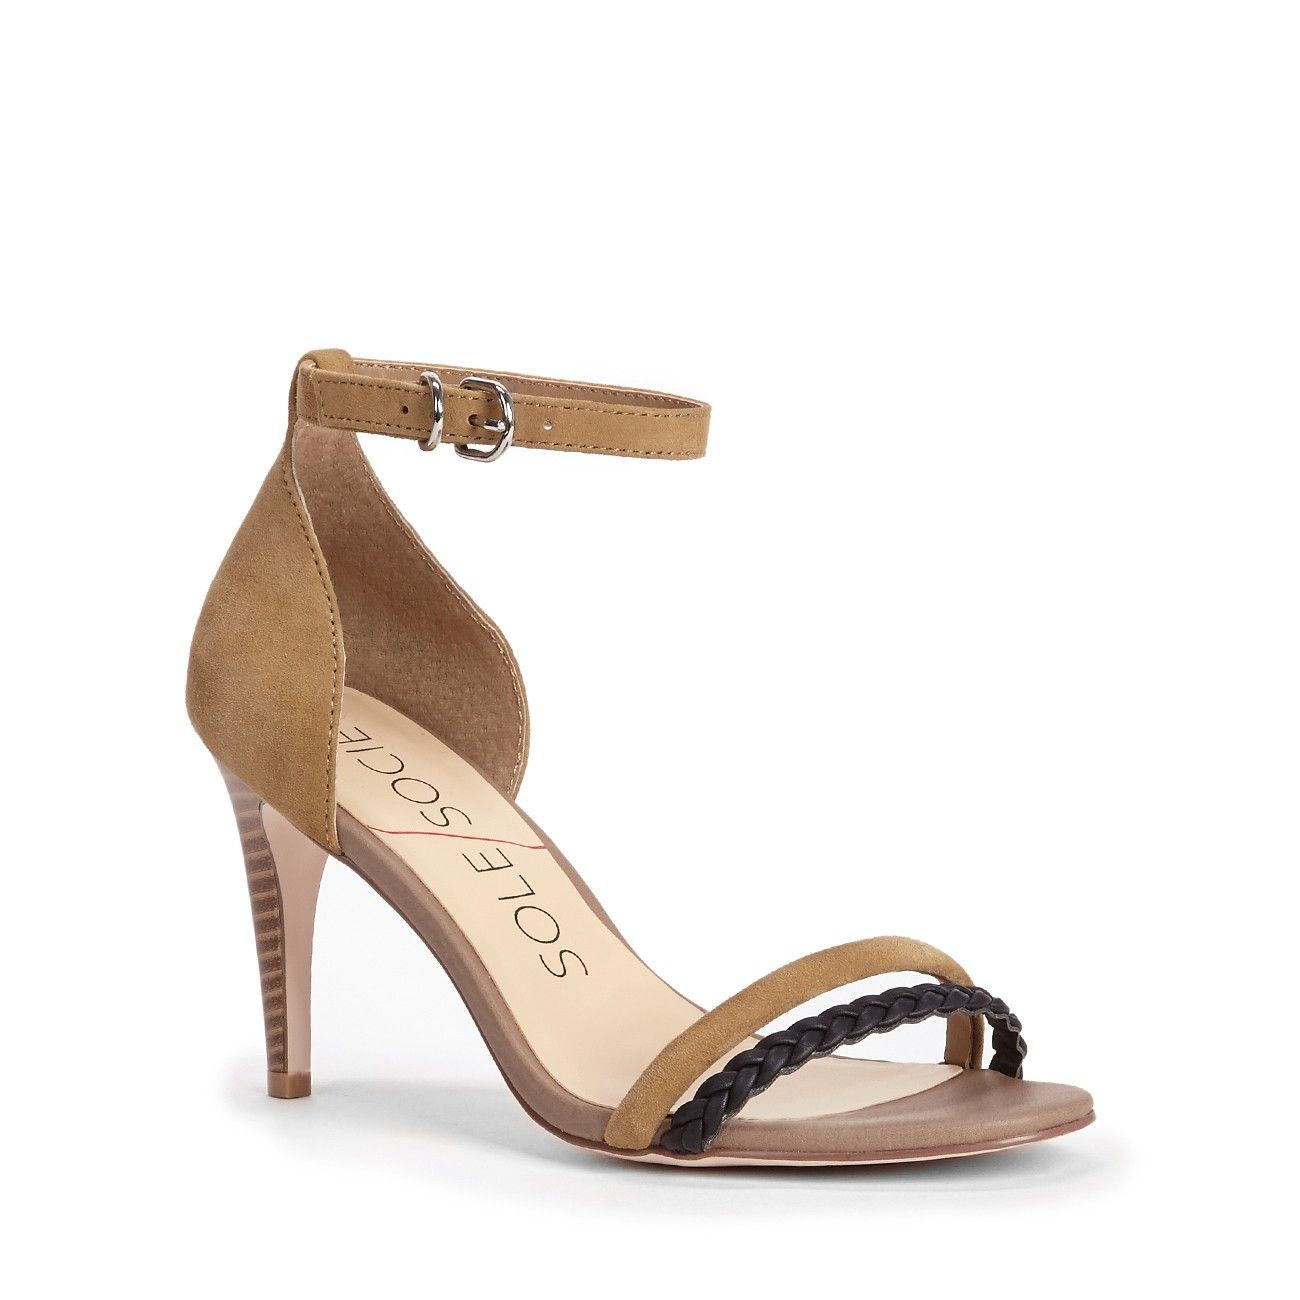 Sole Society Sher | Sole Society Shoes, Bags and Accessories